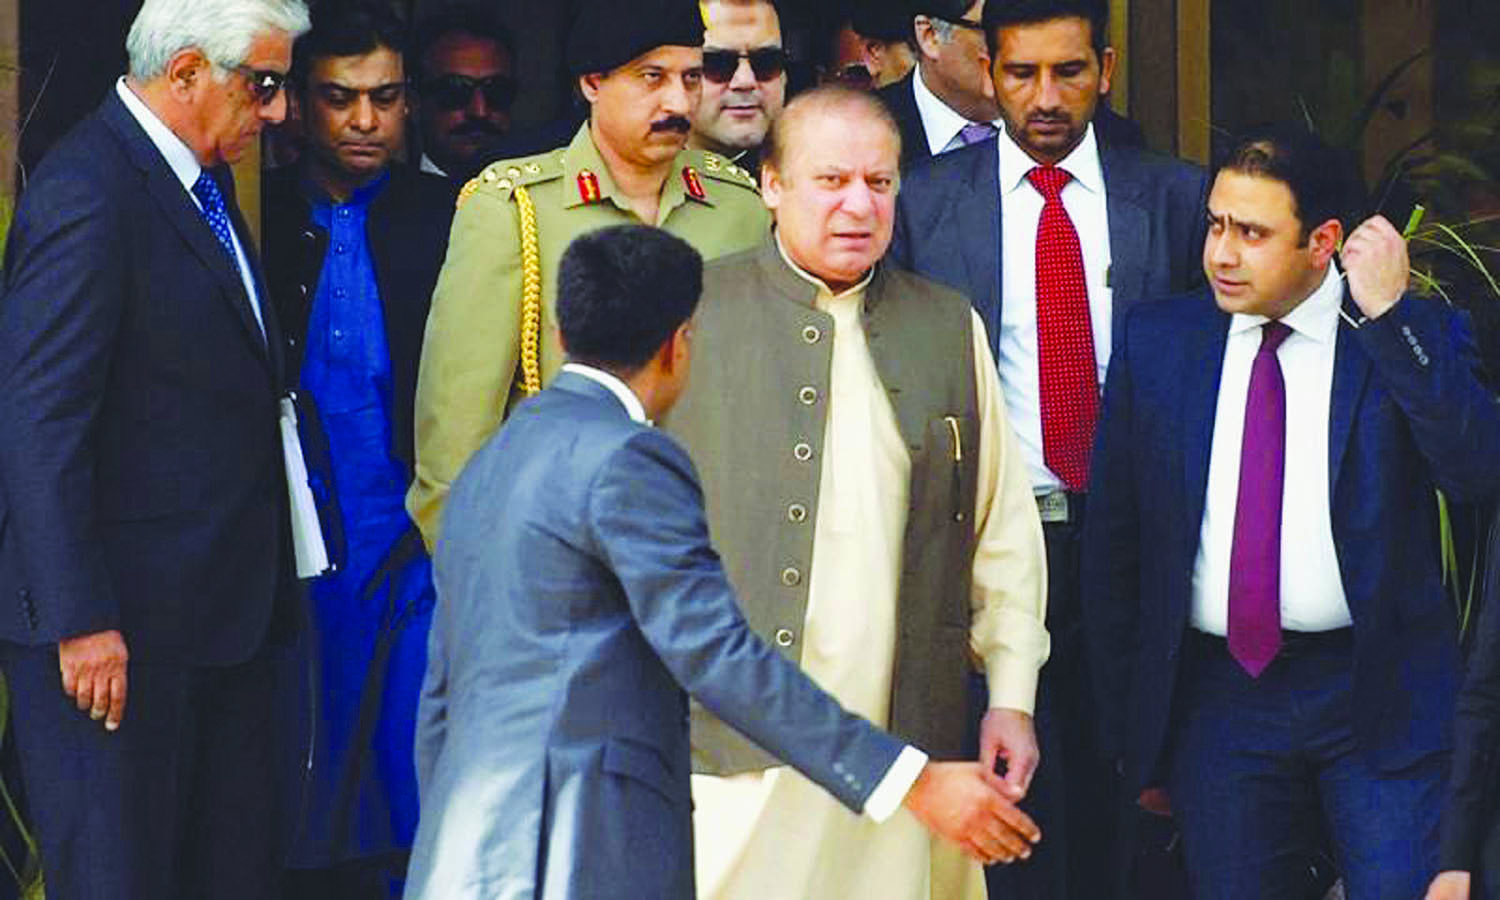 The Panama Papers had its reverberations felt across the world, Pakistani prime minister Mian Nawaz Sharif (being no exception on this count.